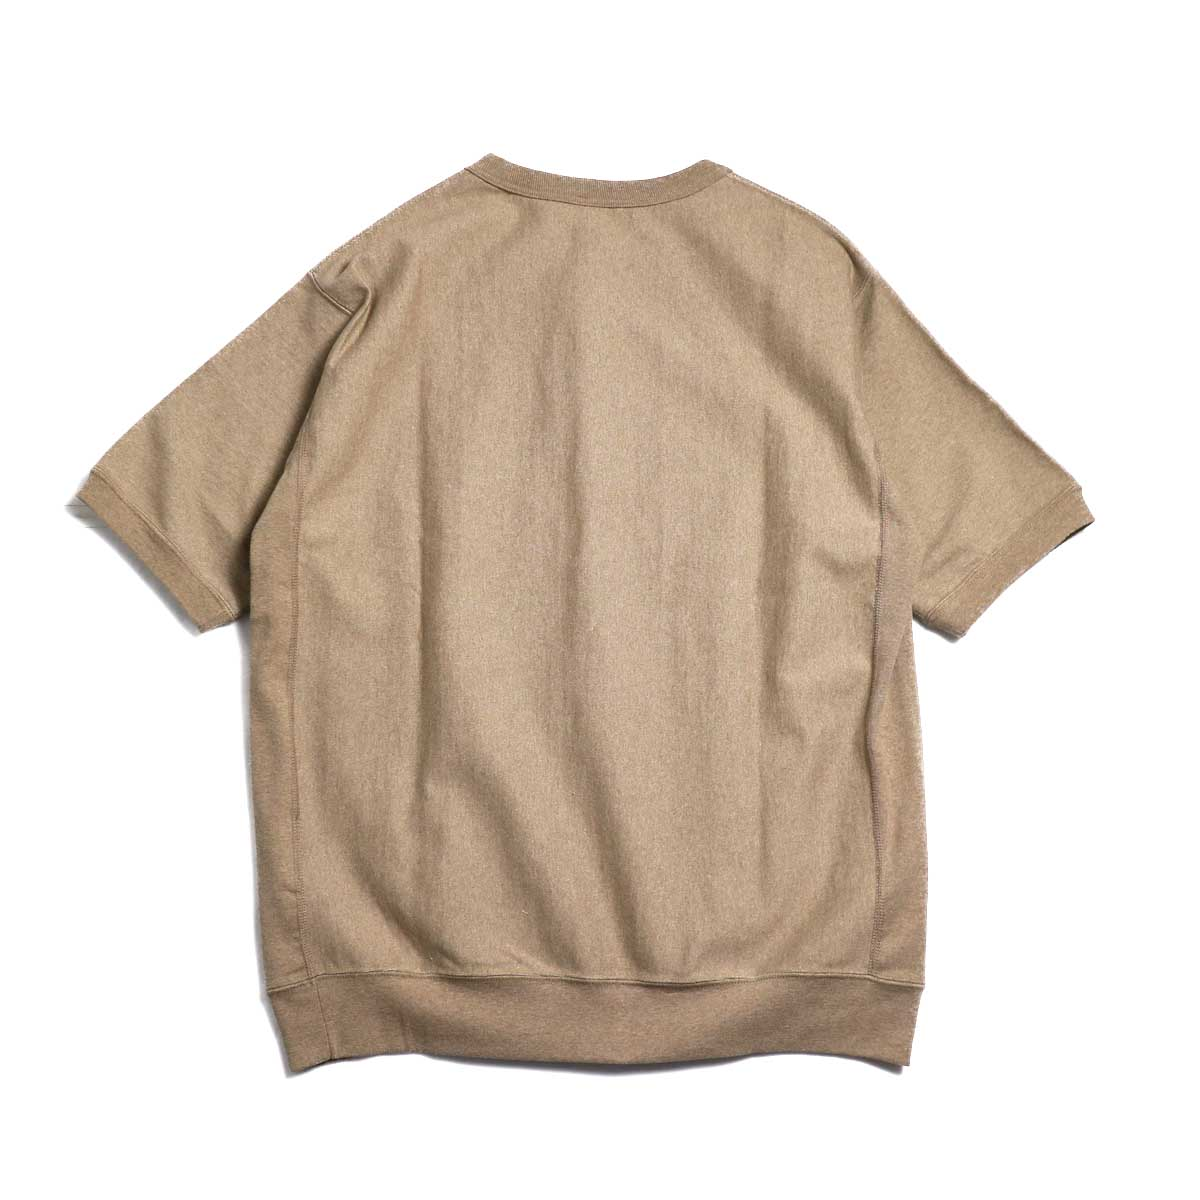 A VONTADE / Reverse Crew Top S/S -Amber Mix 背面